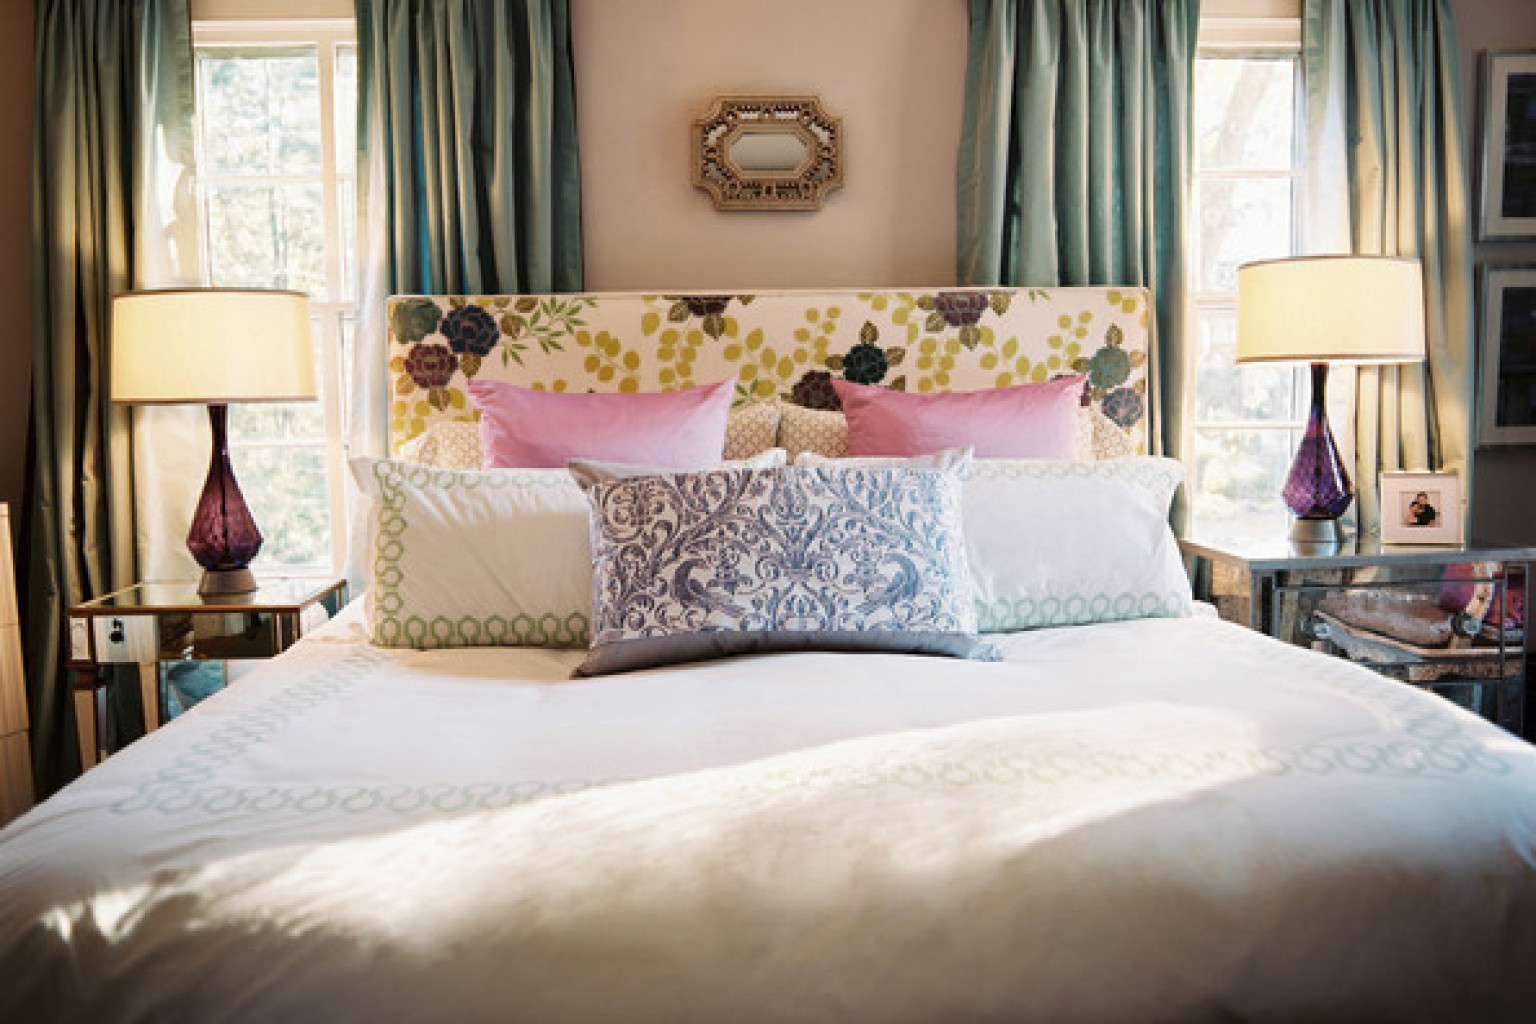 Romantic Bed 8 Romantic Bedroom Ideas From Lonny That Will Totally Get You In